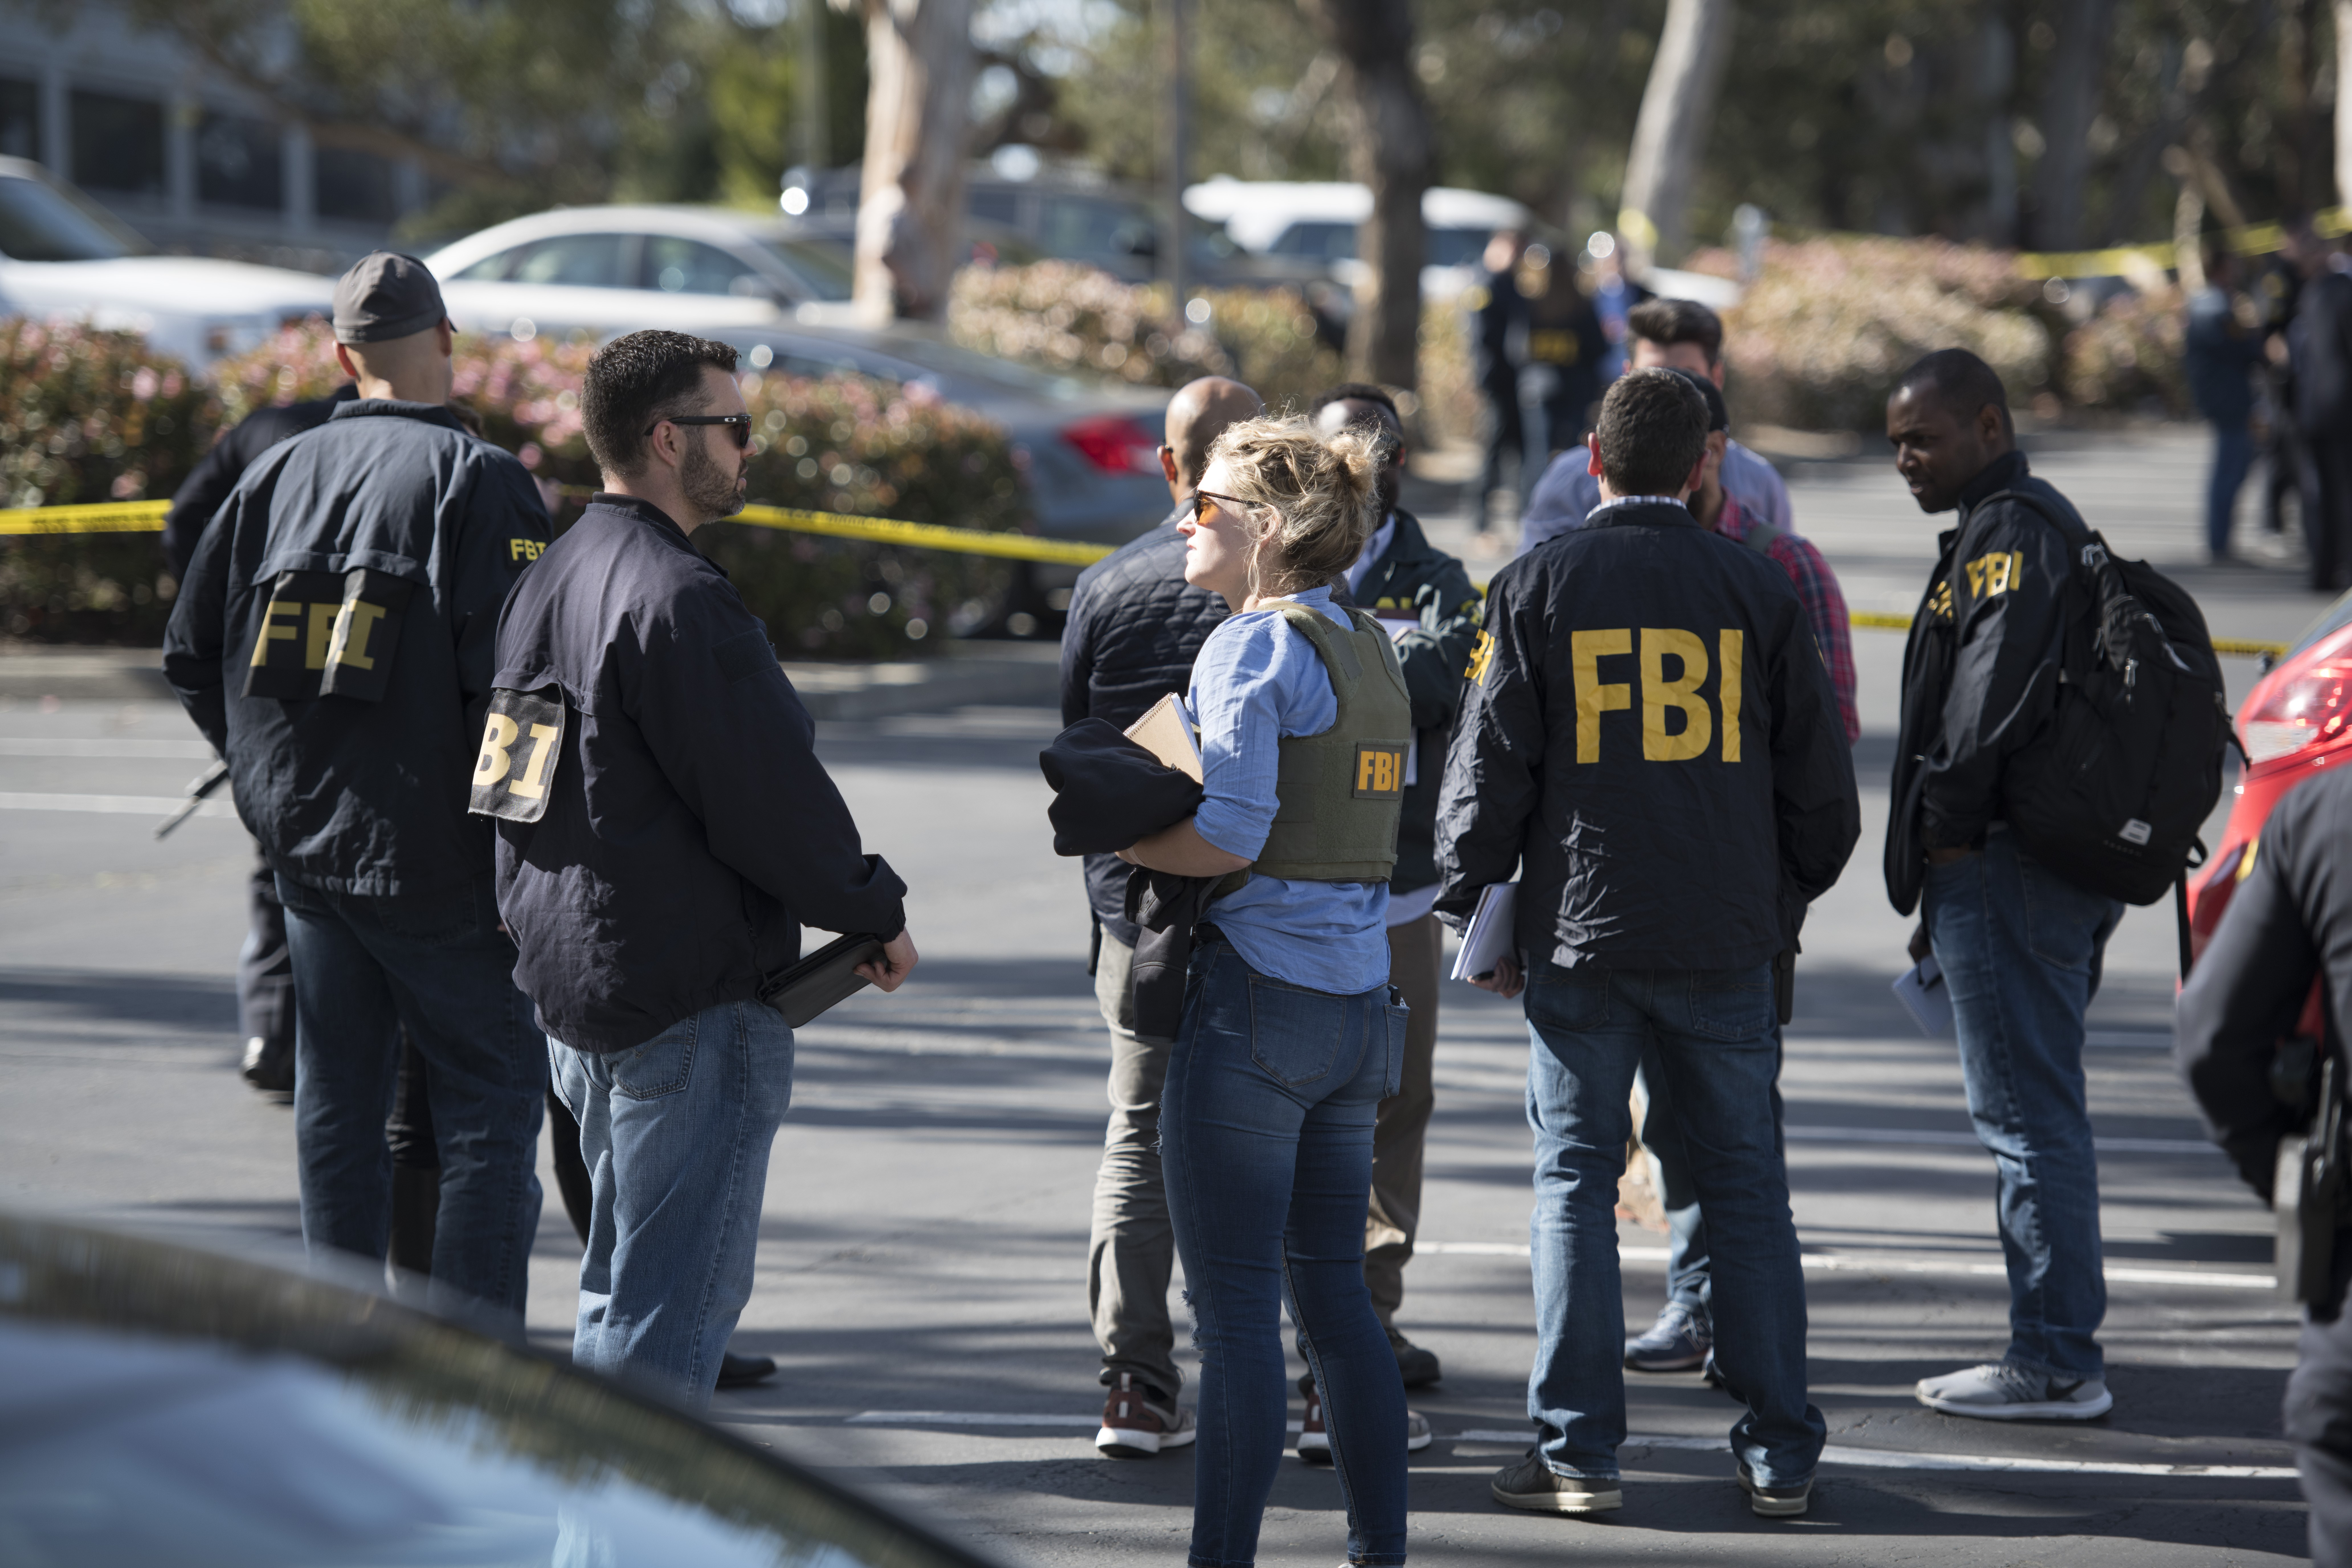 US: At least 4 people injured in YouTube HQ shooting